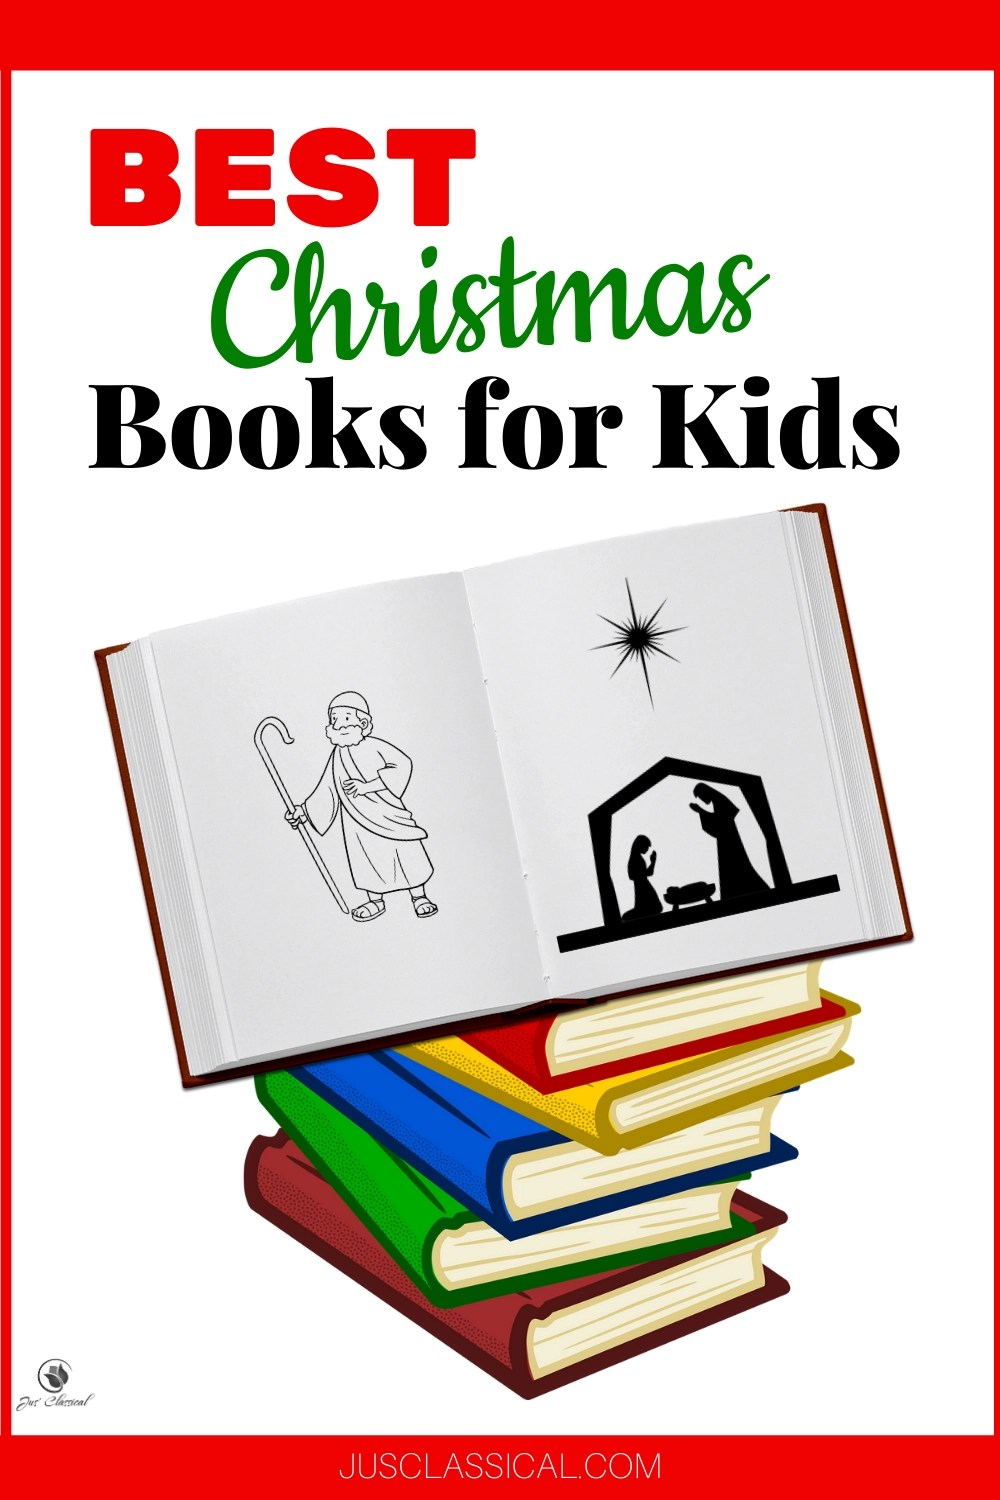 Image of stack of books with the top book open to pictures of a shepherd and a nativity scene with title Best Christmas Books for Kids